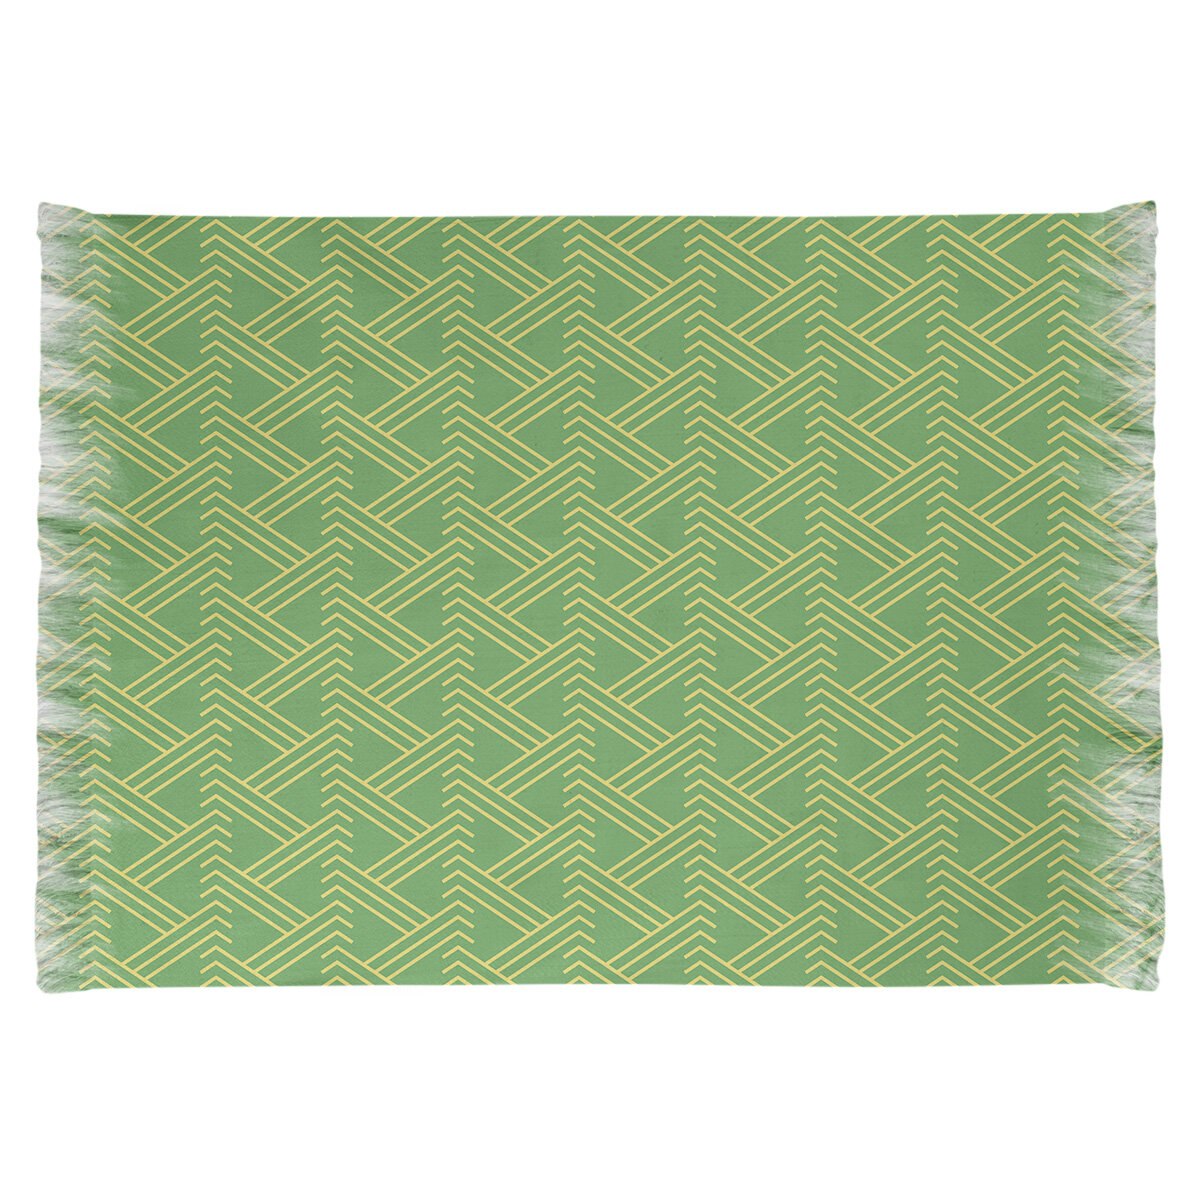 East Urban Home Zig Zag Green Yellow Area Rug Wayfair